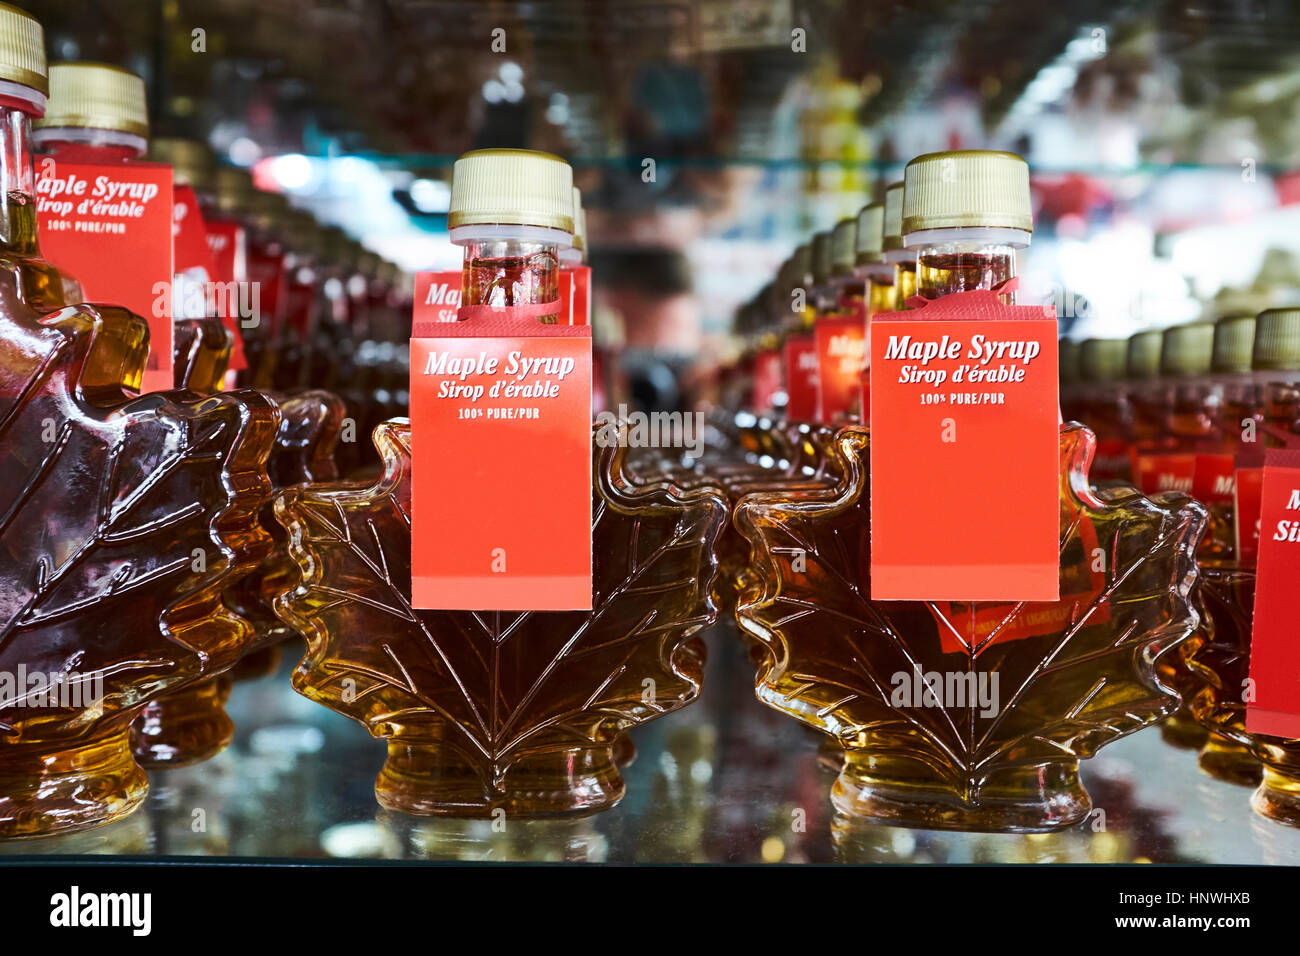 Rows of maple leaf shaped bottles containing maple syrup on shop shelf, Canada - Stock Image